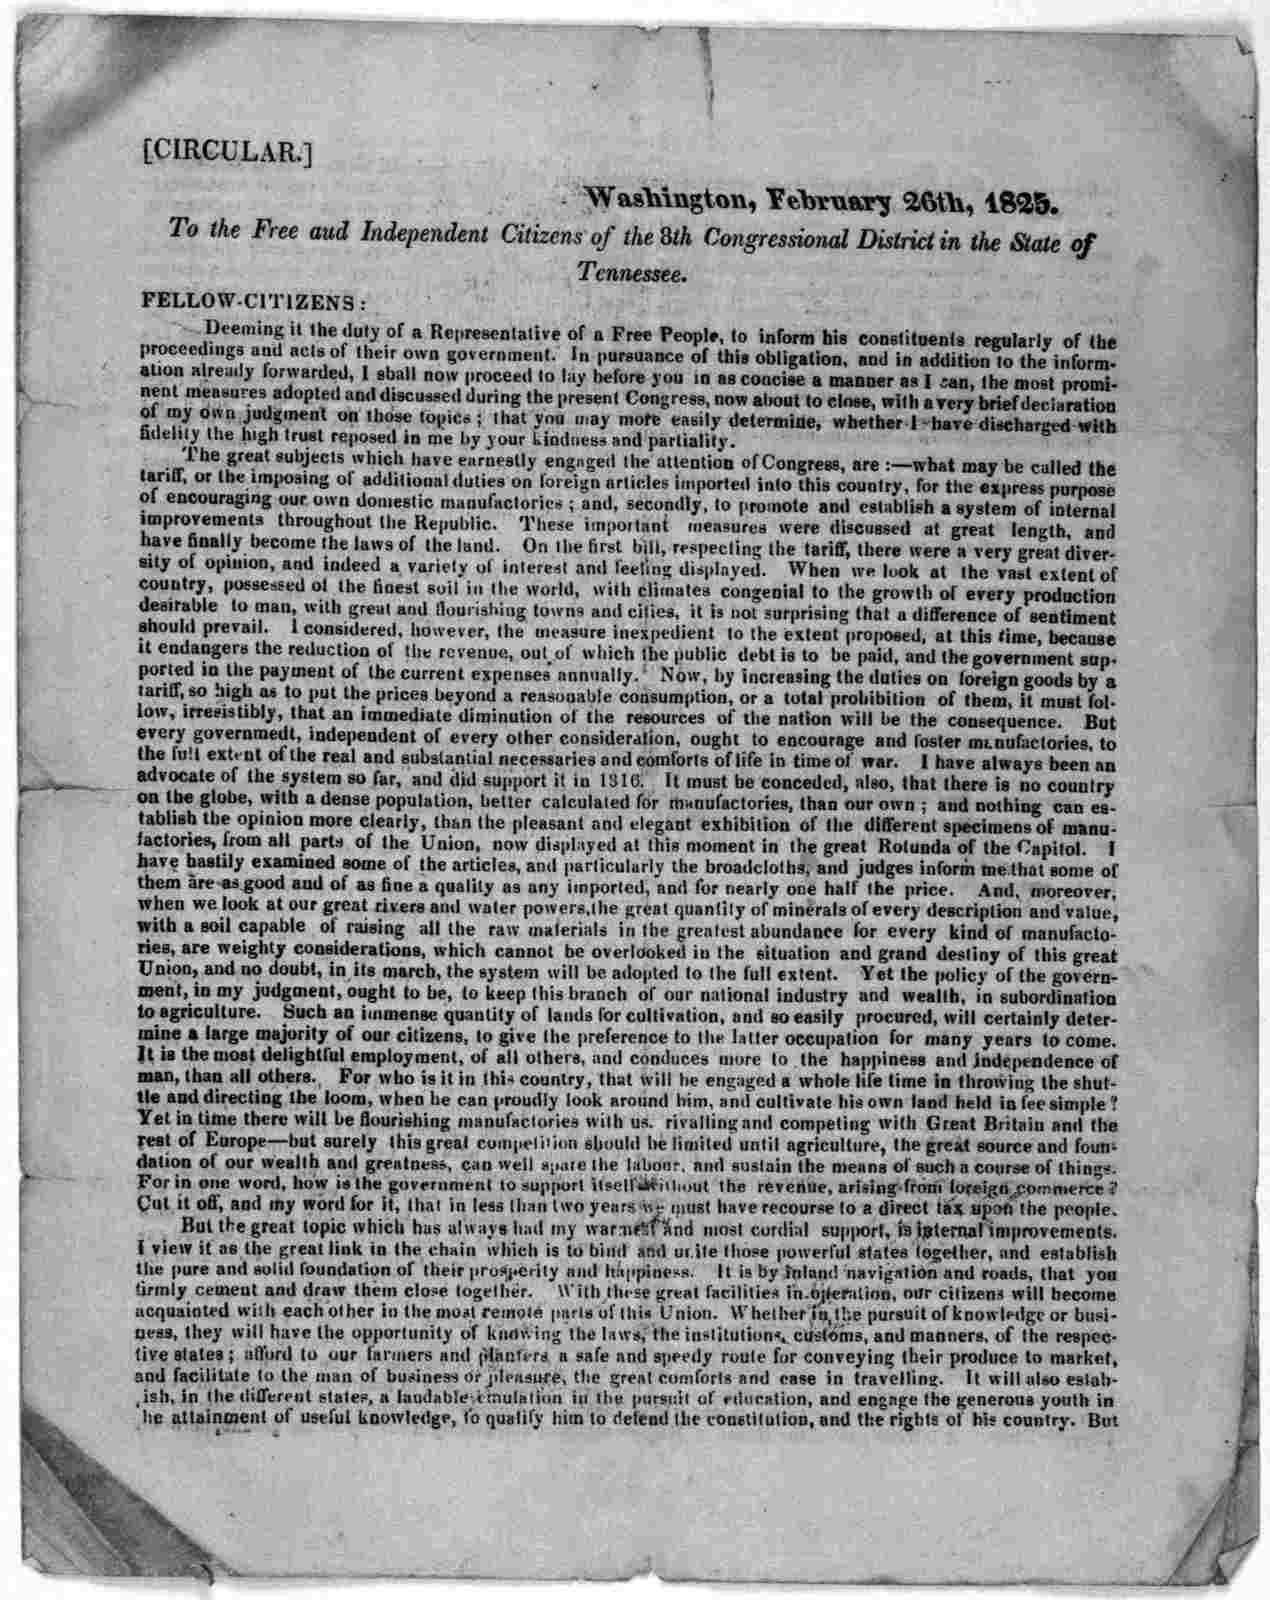 Circular. Washington, February 26th, 1825. To the free and independent citizens of the 8th Congressional district in the State of Tennessee.